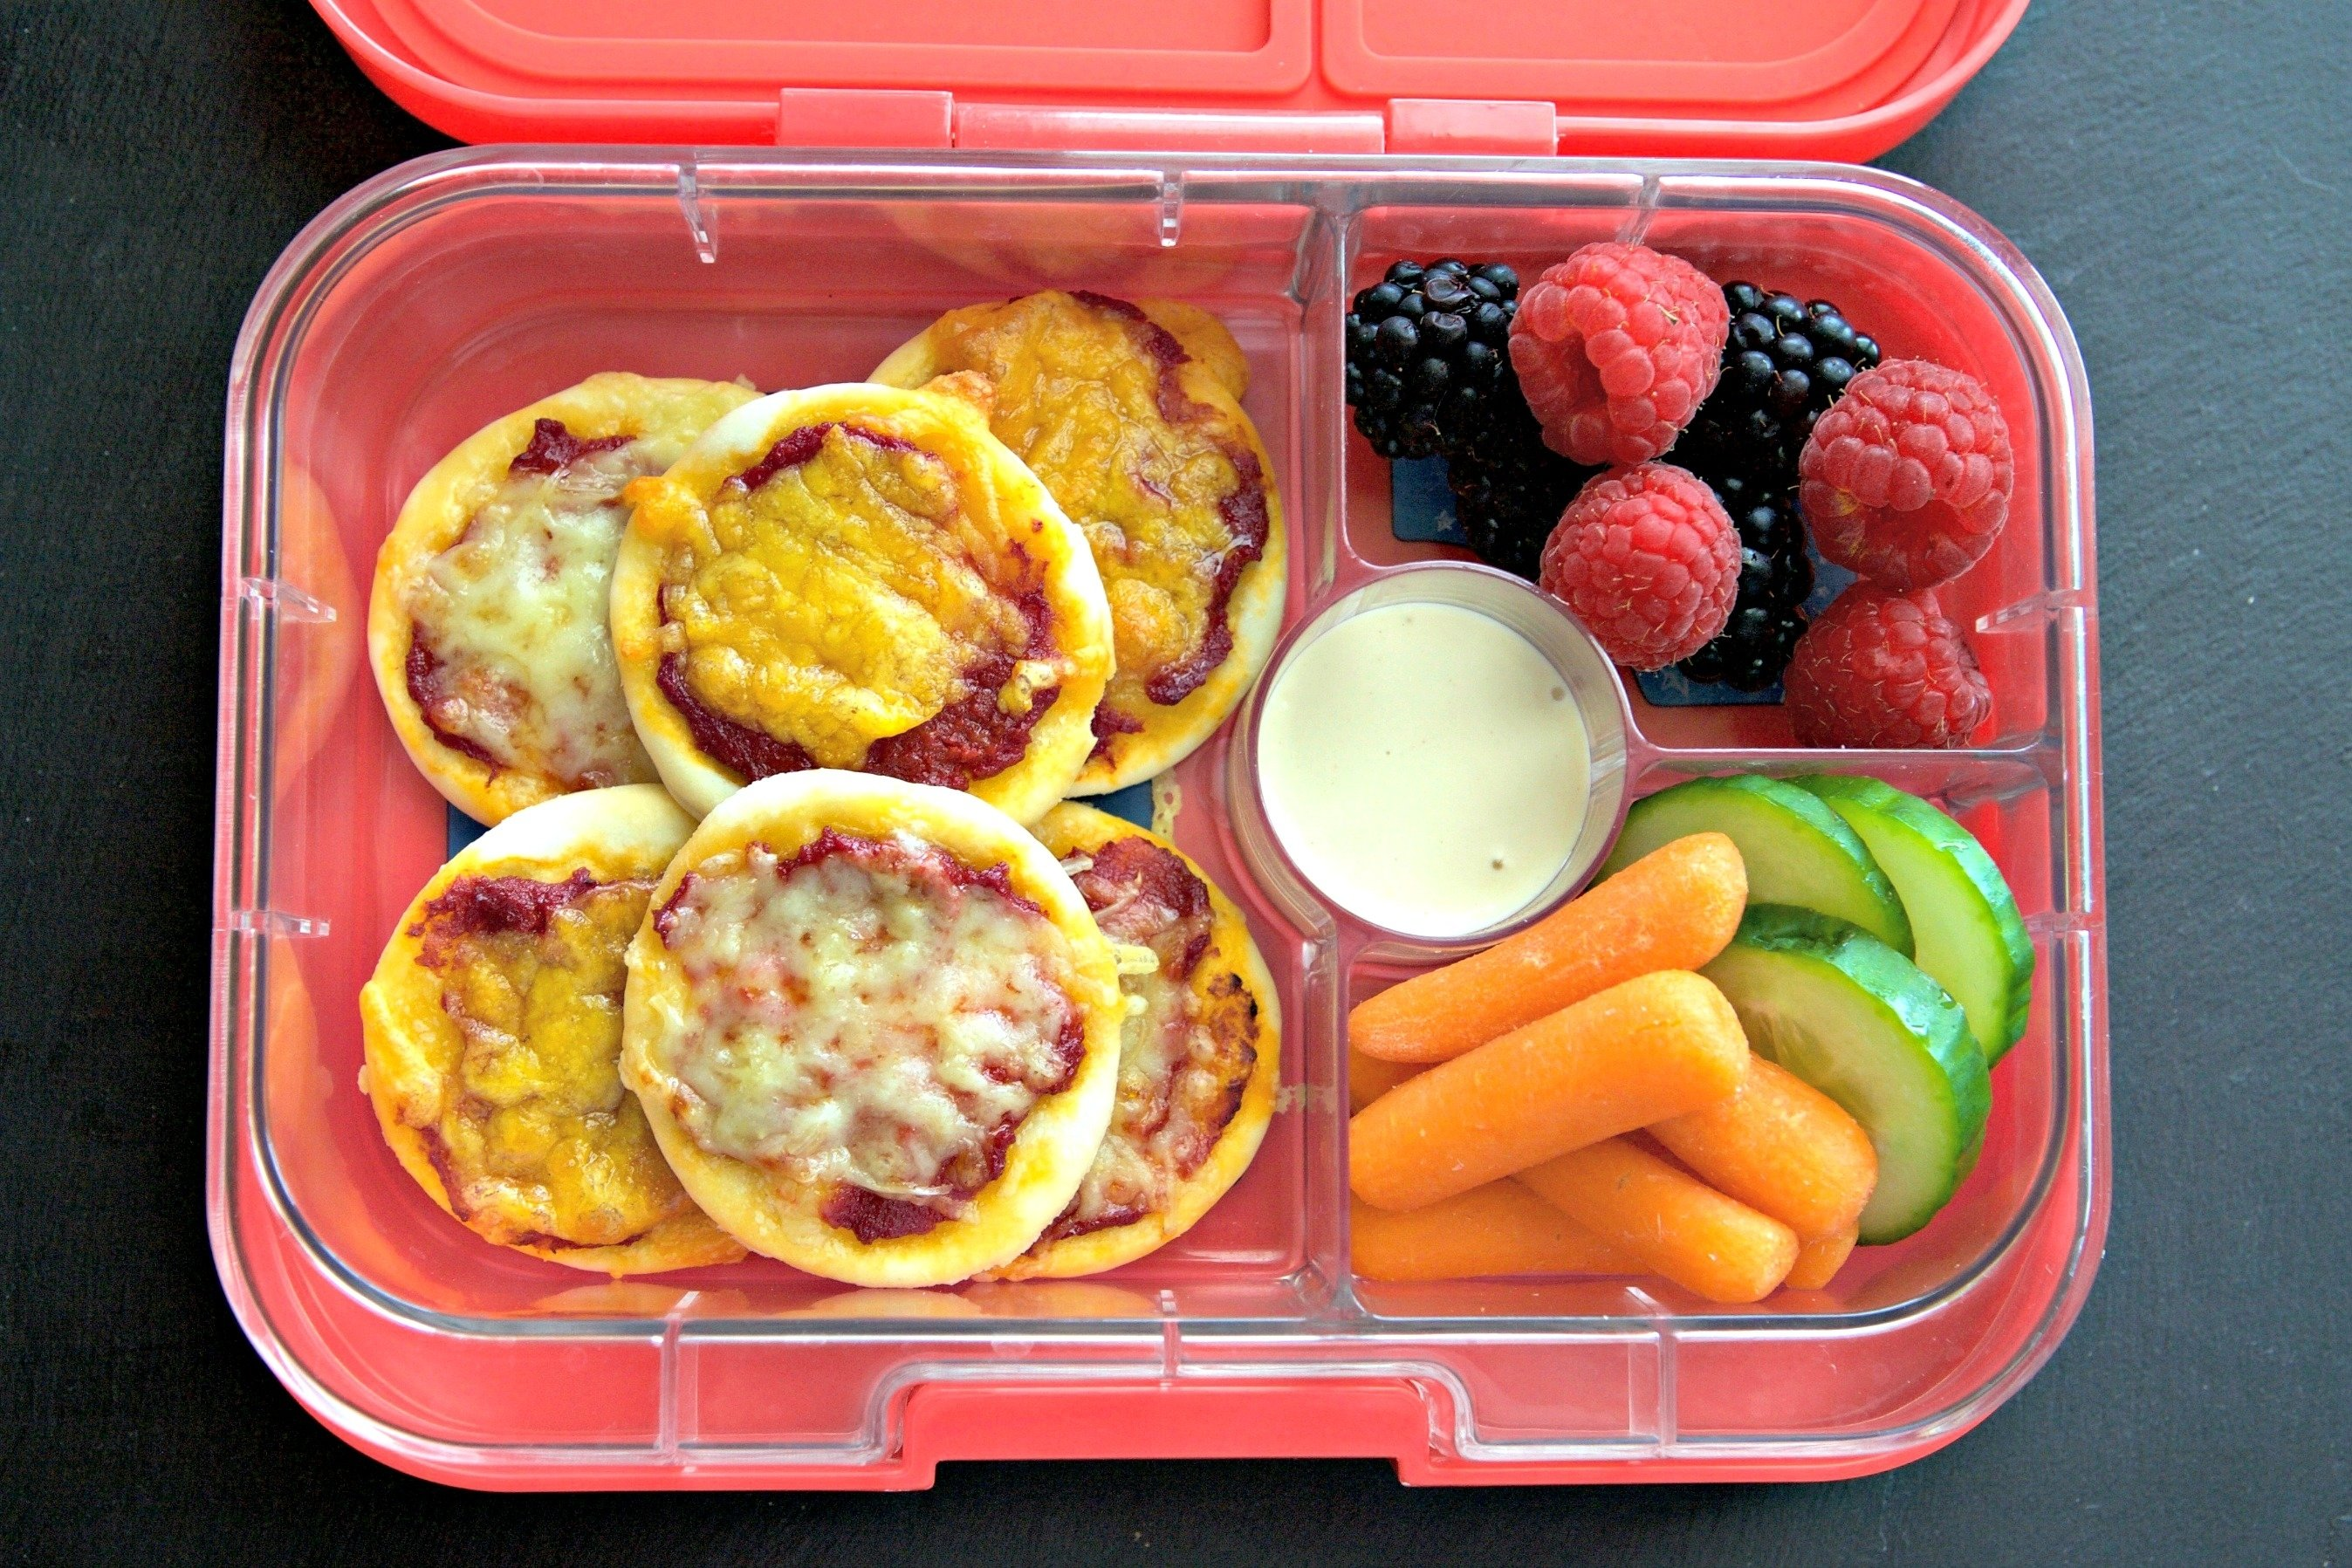 10 Ideal School Lunch Ideas For Picky Kids mini pizza recipe the perfect picky eater meal yumbox 5 2020